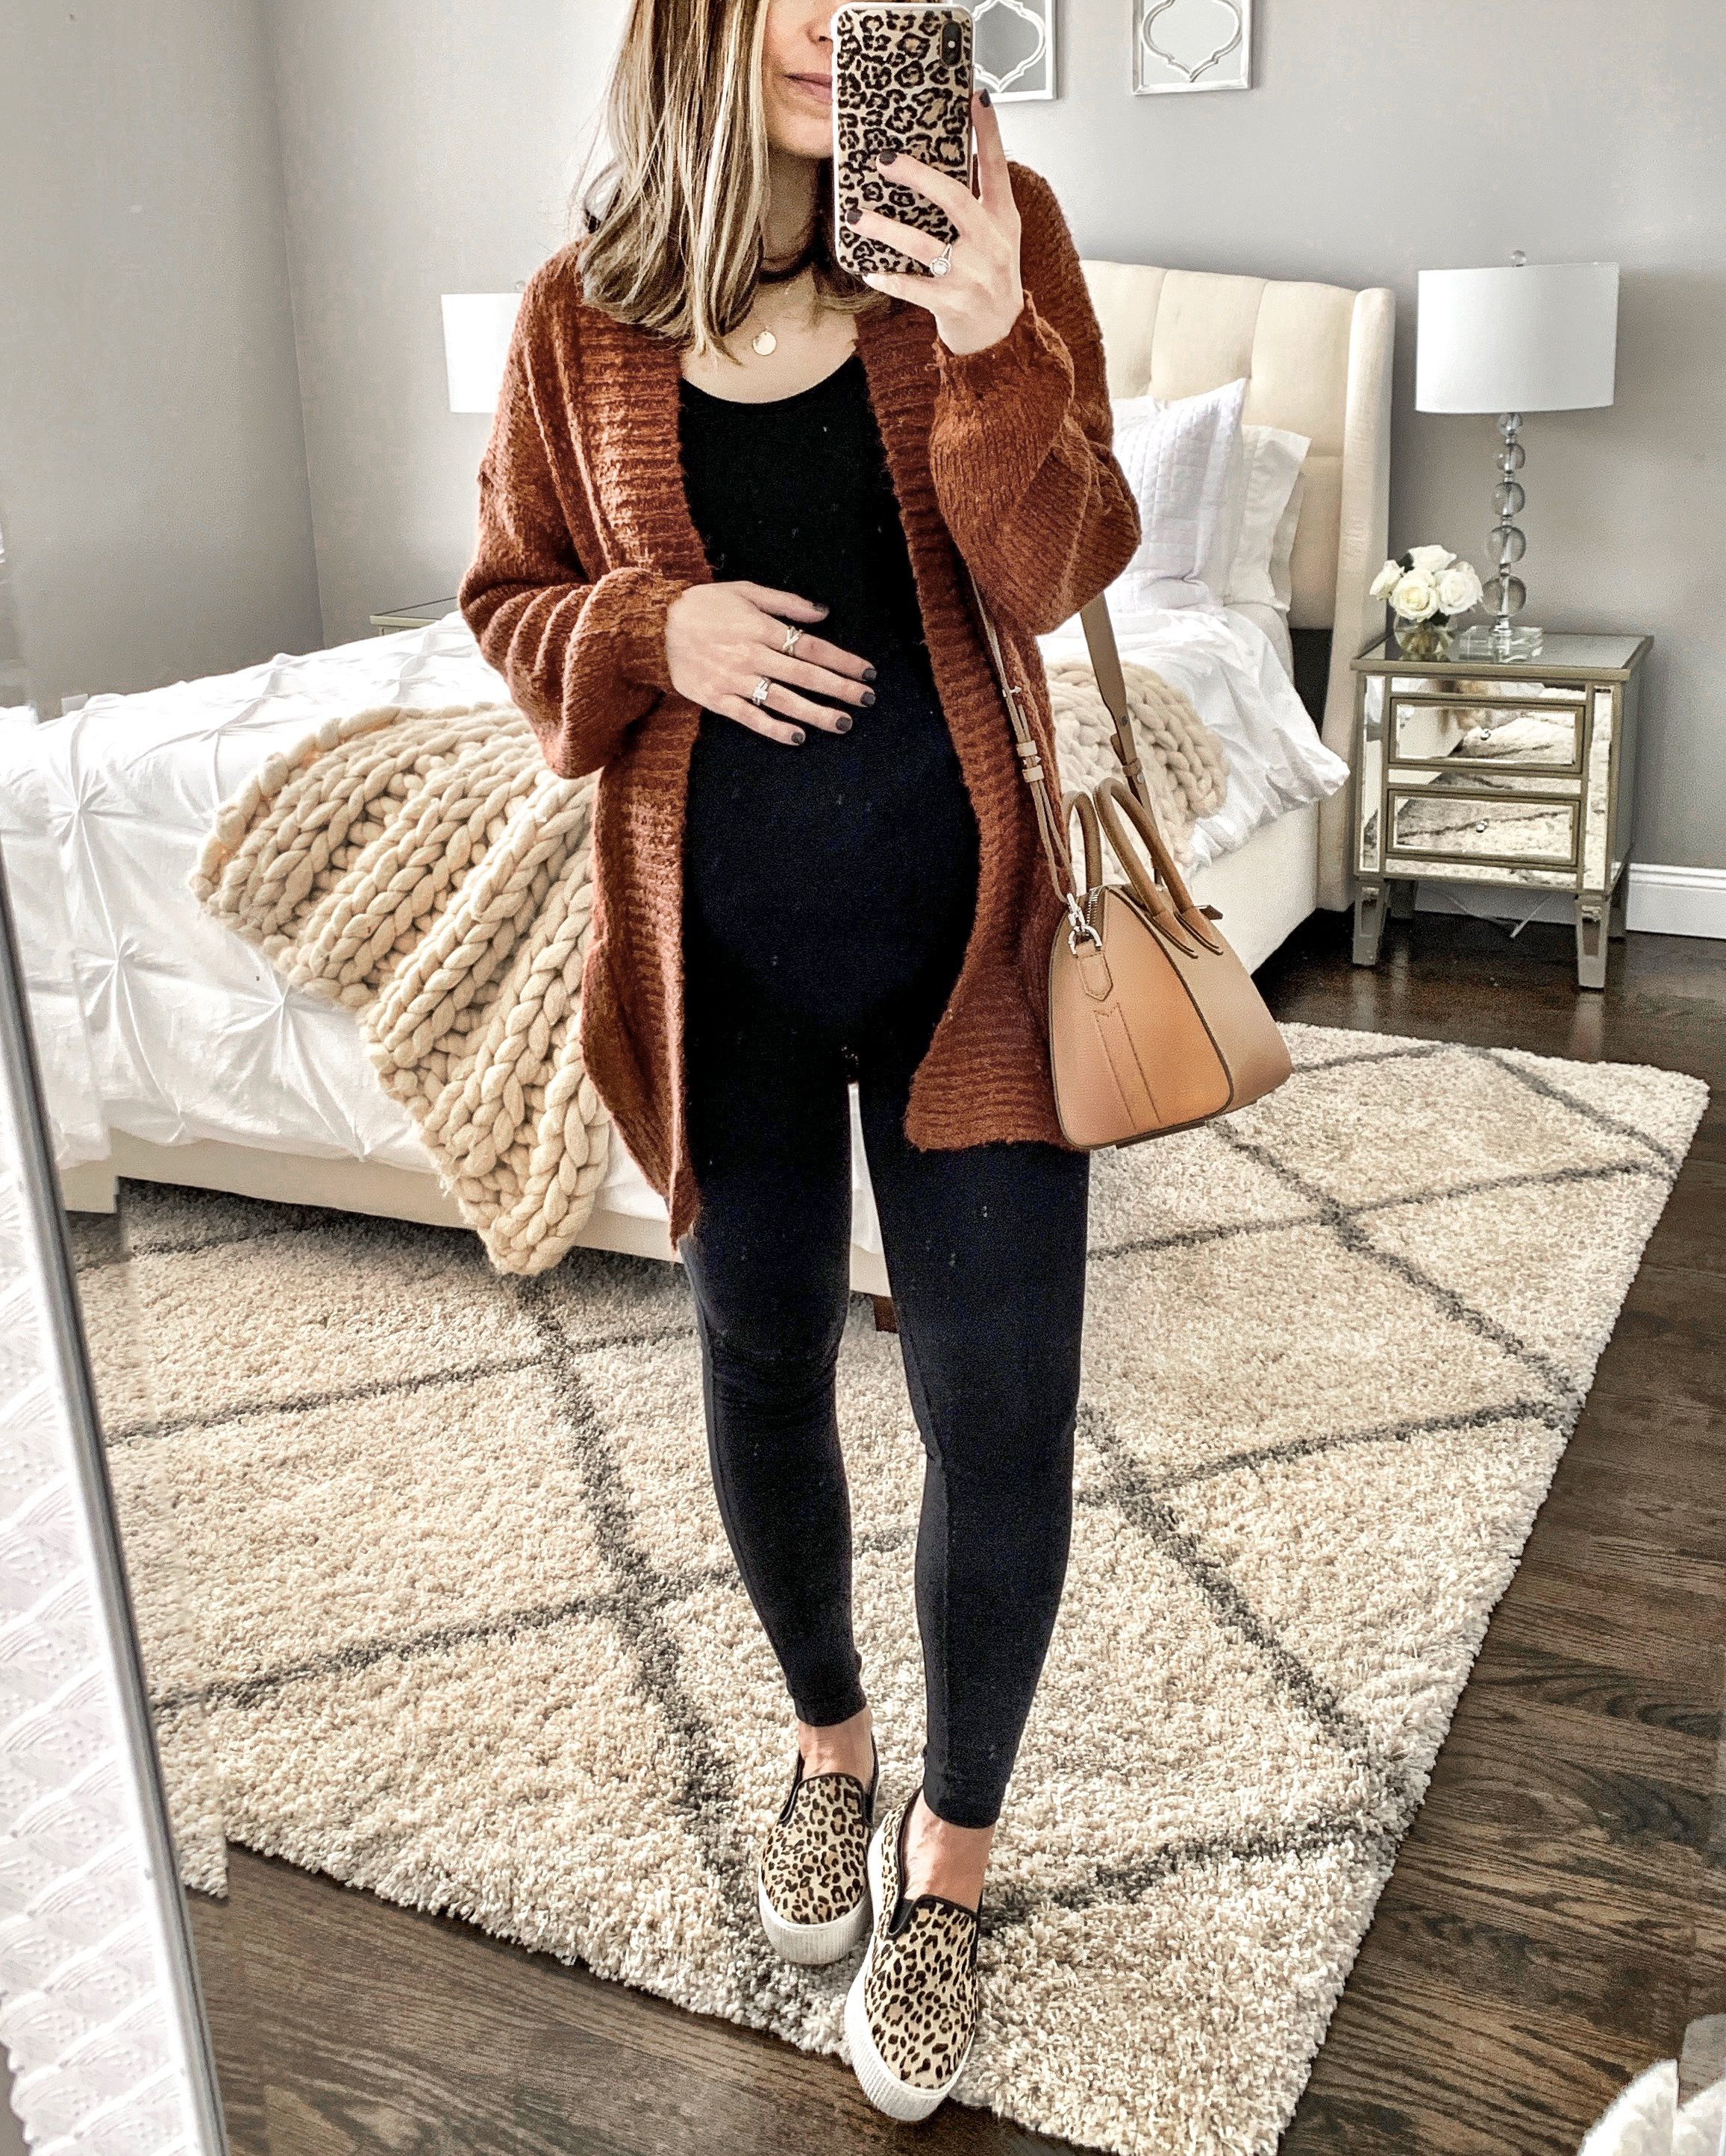 Mrscasual Instagram Fashion Blogger Teacher Mom Women S Style Blog Maternity Clothes Winter Maternity Outfits Stylish Maternity